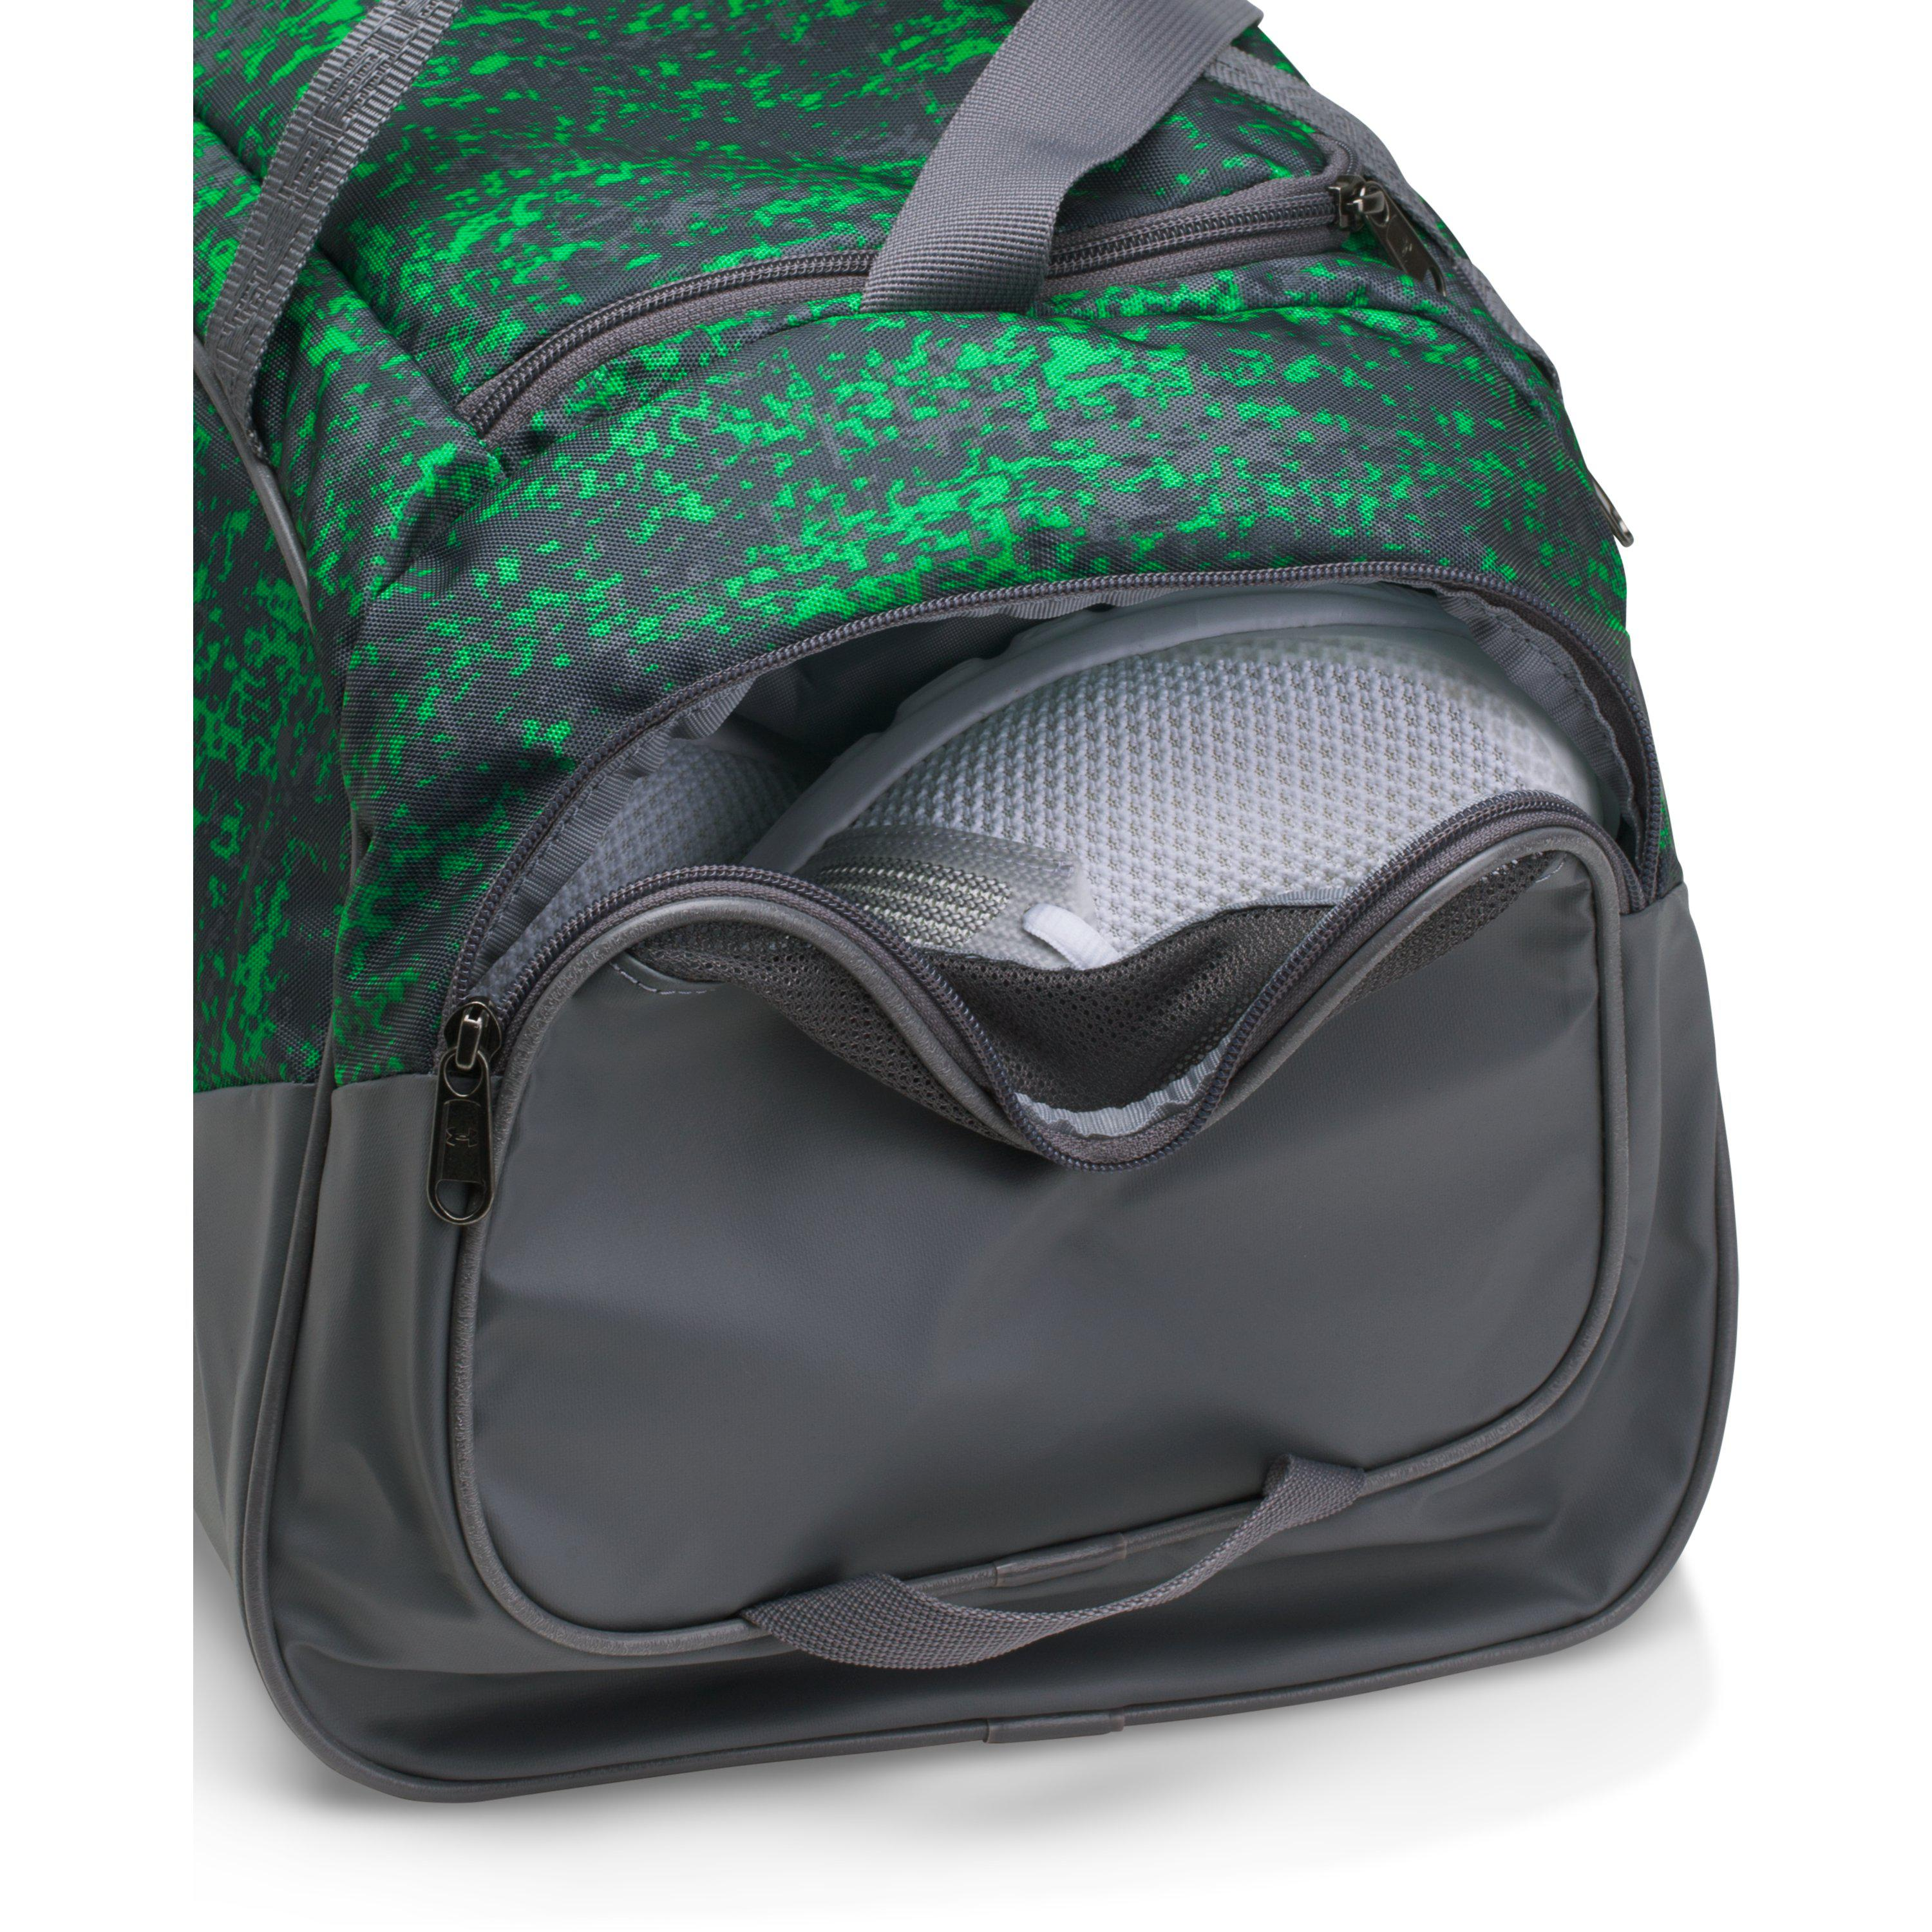 06ecbf3b0 Under Armour Men's Ua Undeniable 3.0 Small Duffle Bag in Green for ...